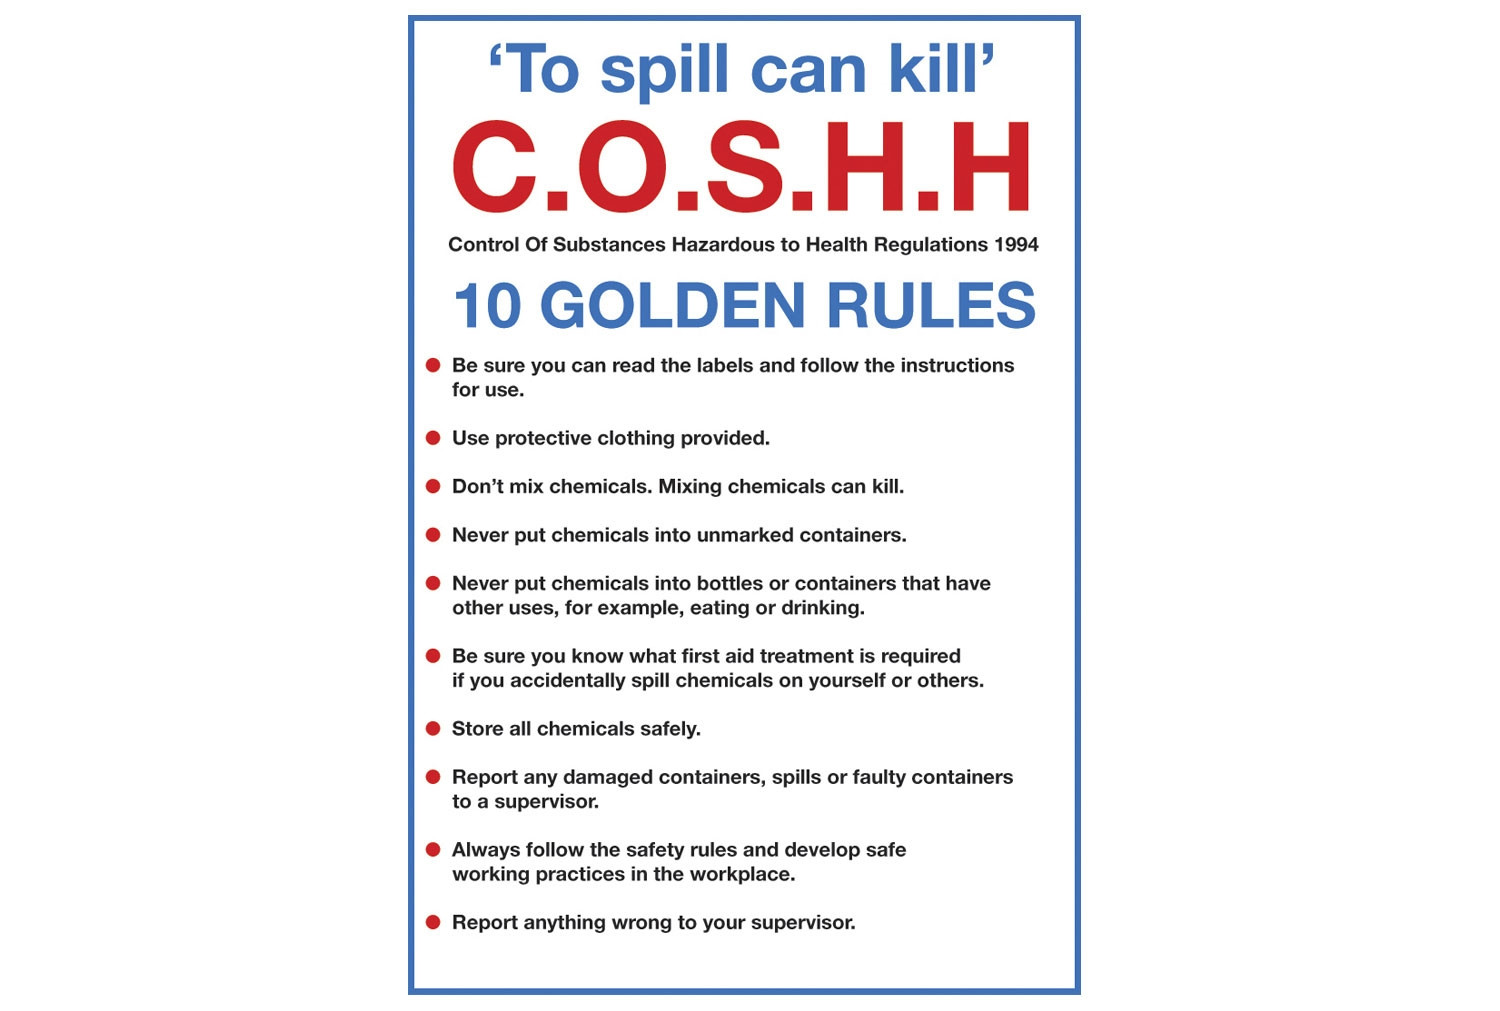 Coshh 10 Golden Rules Sign